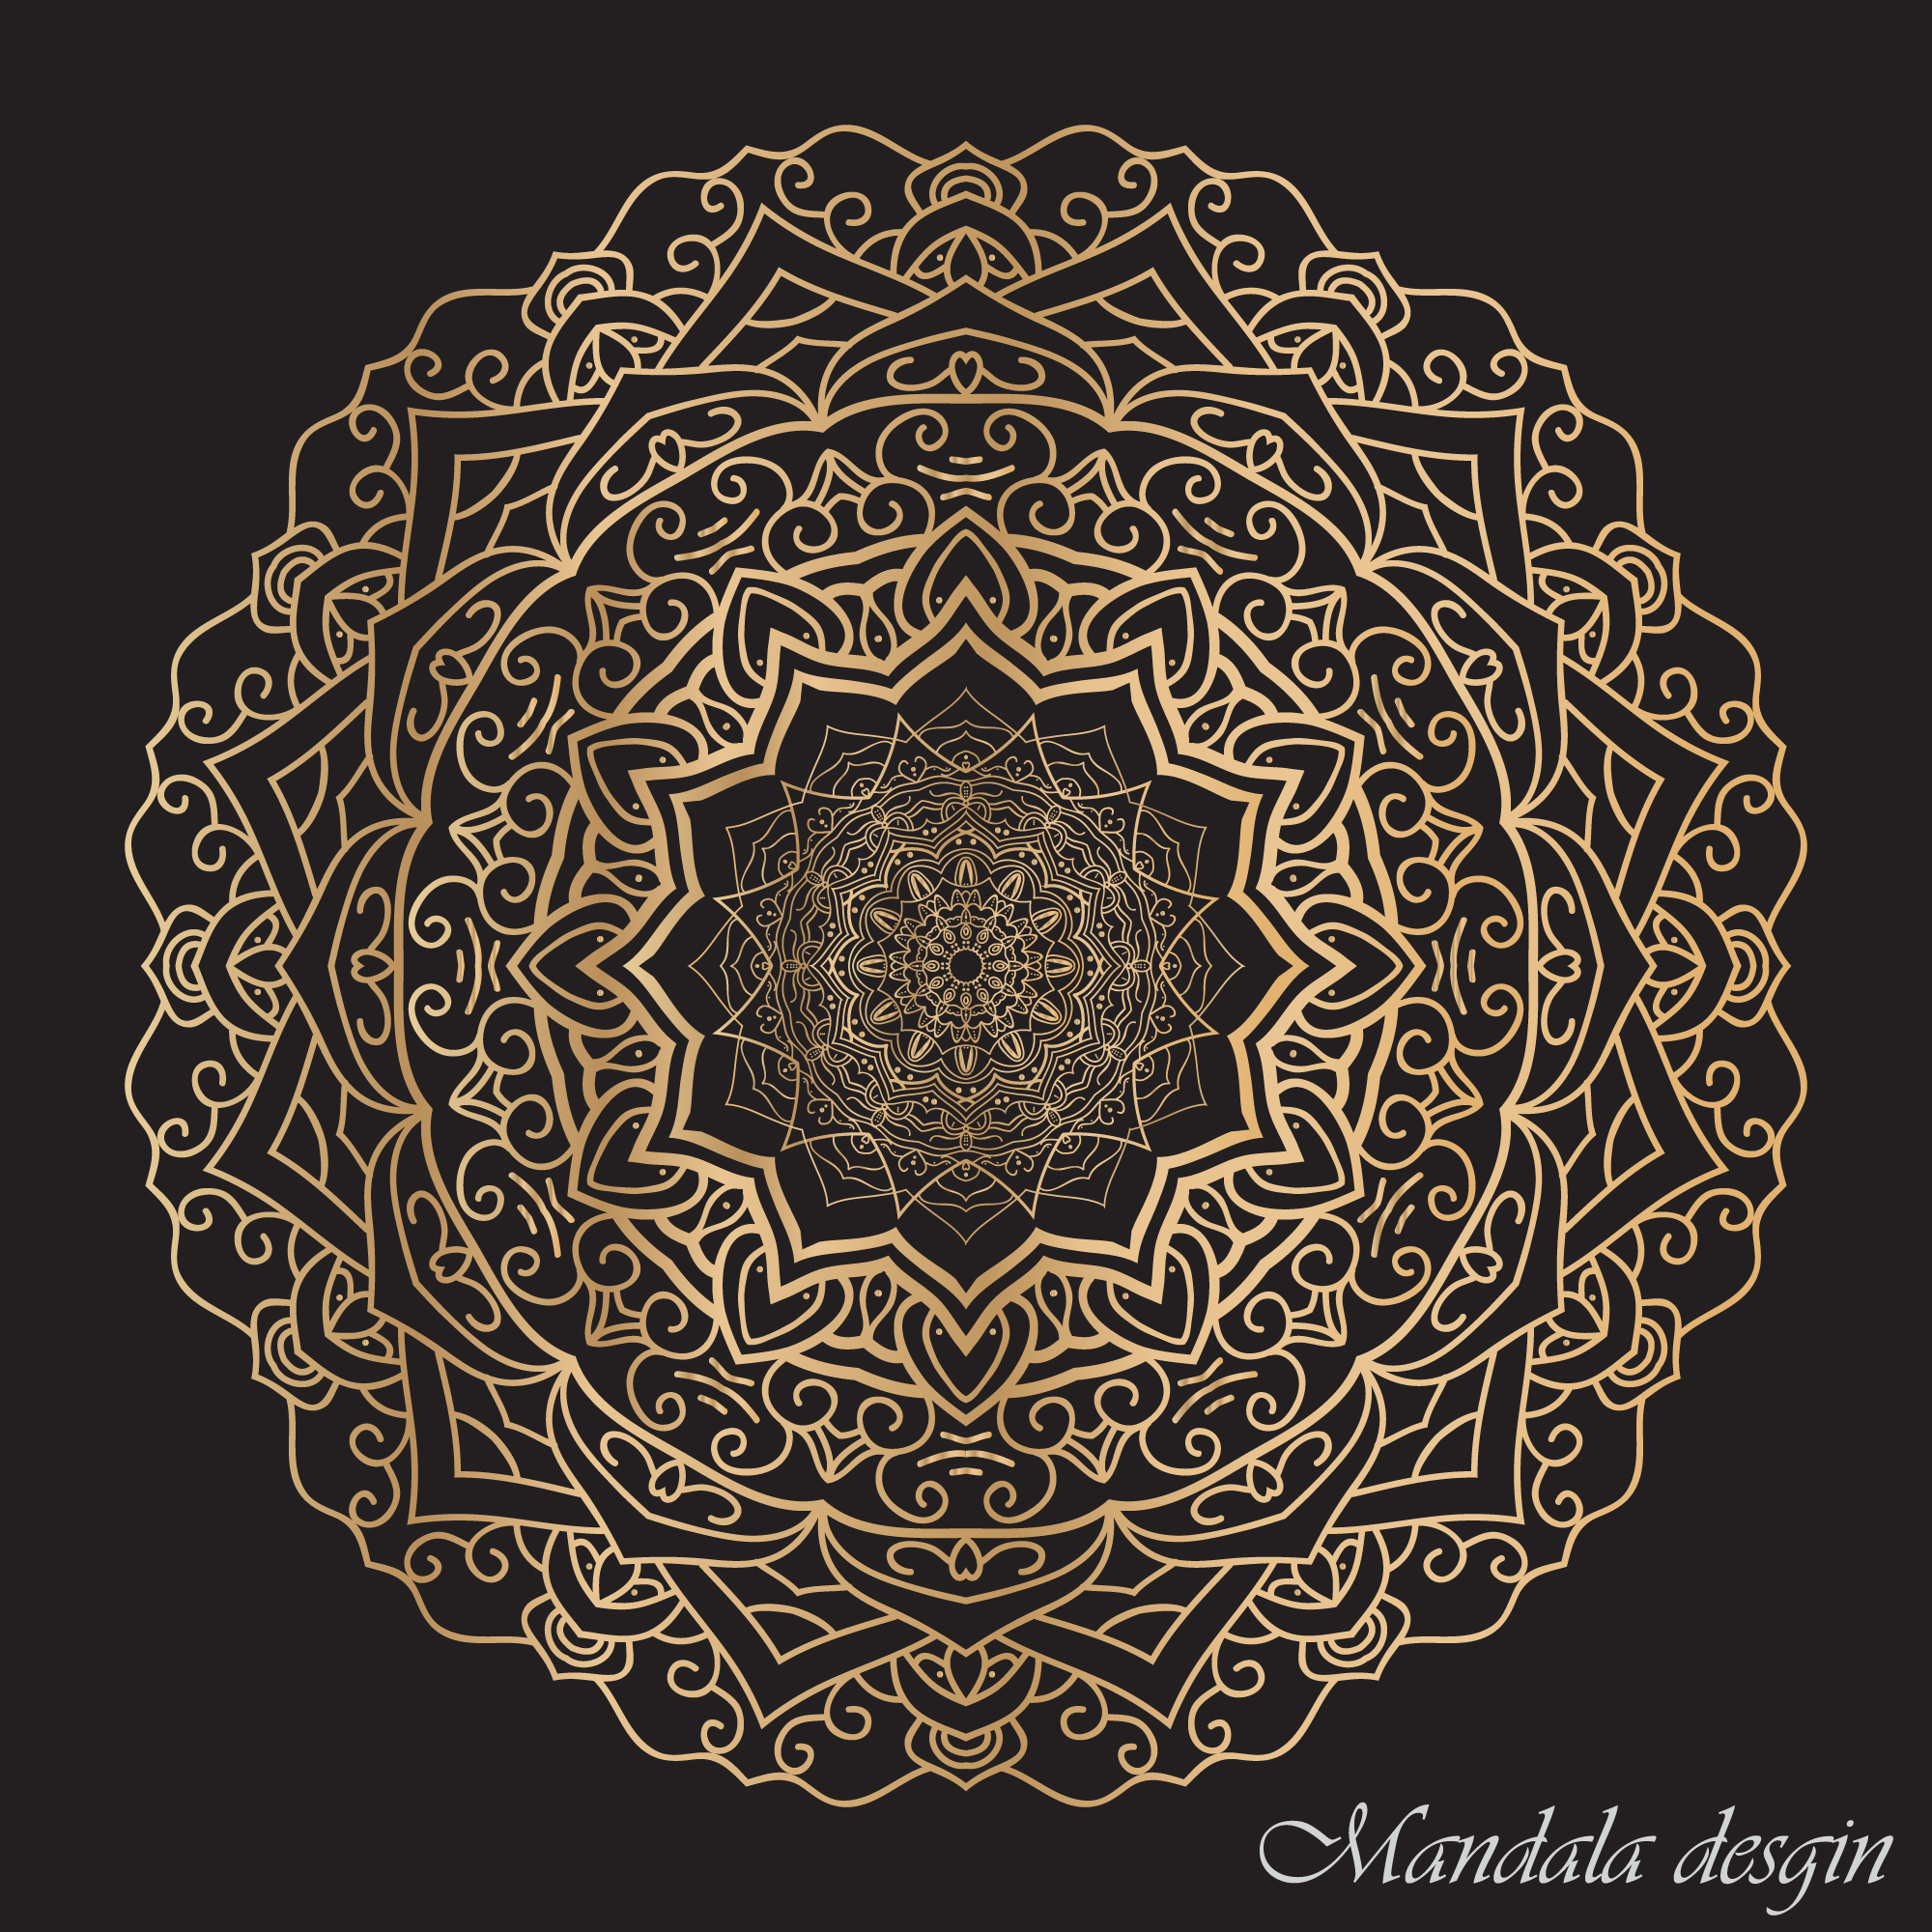 Rounded mandala with dark background